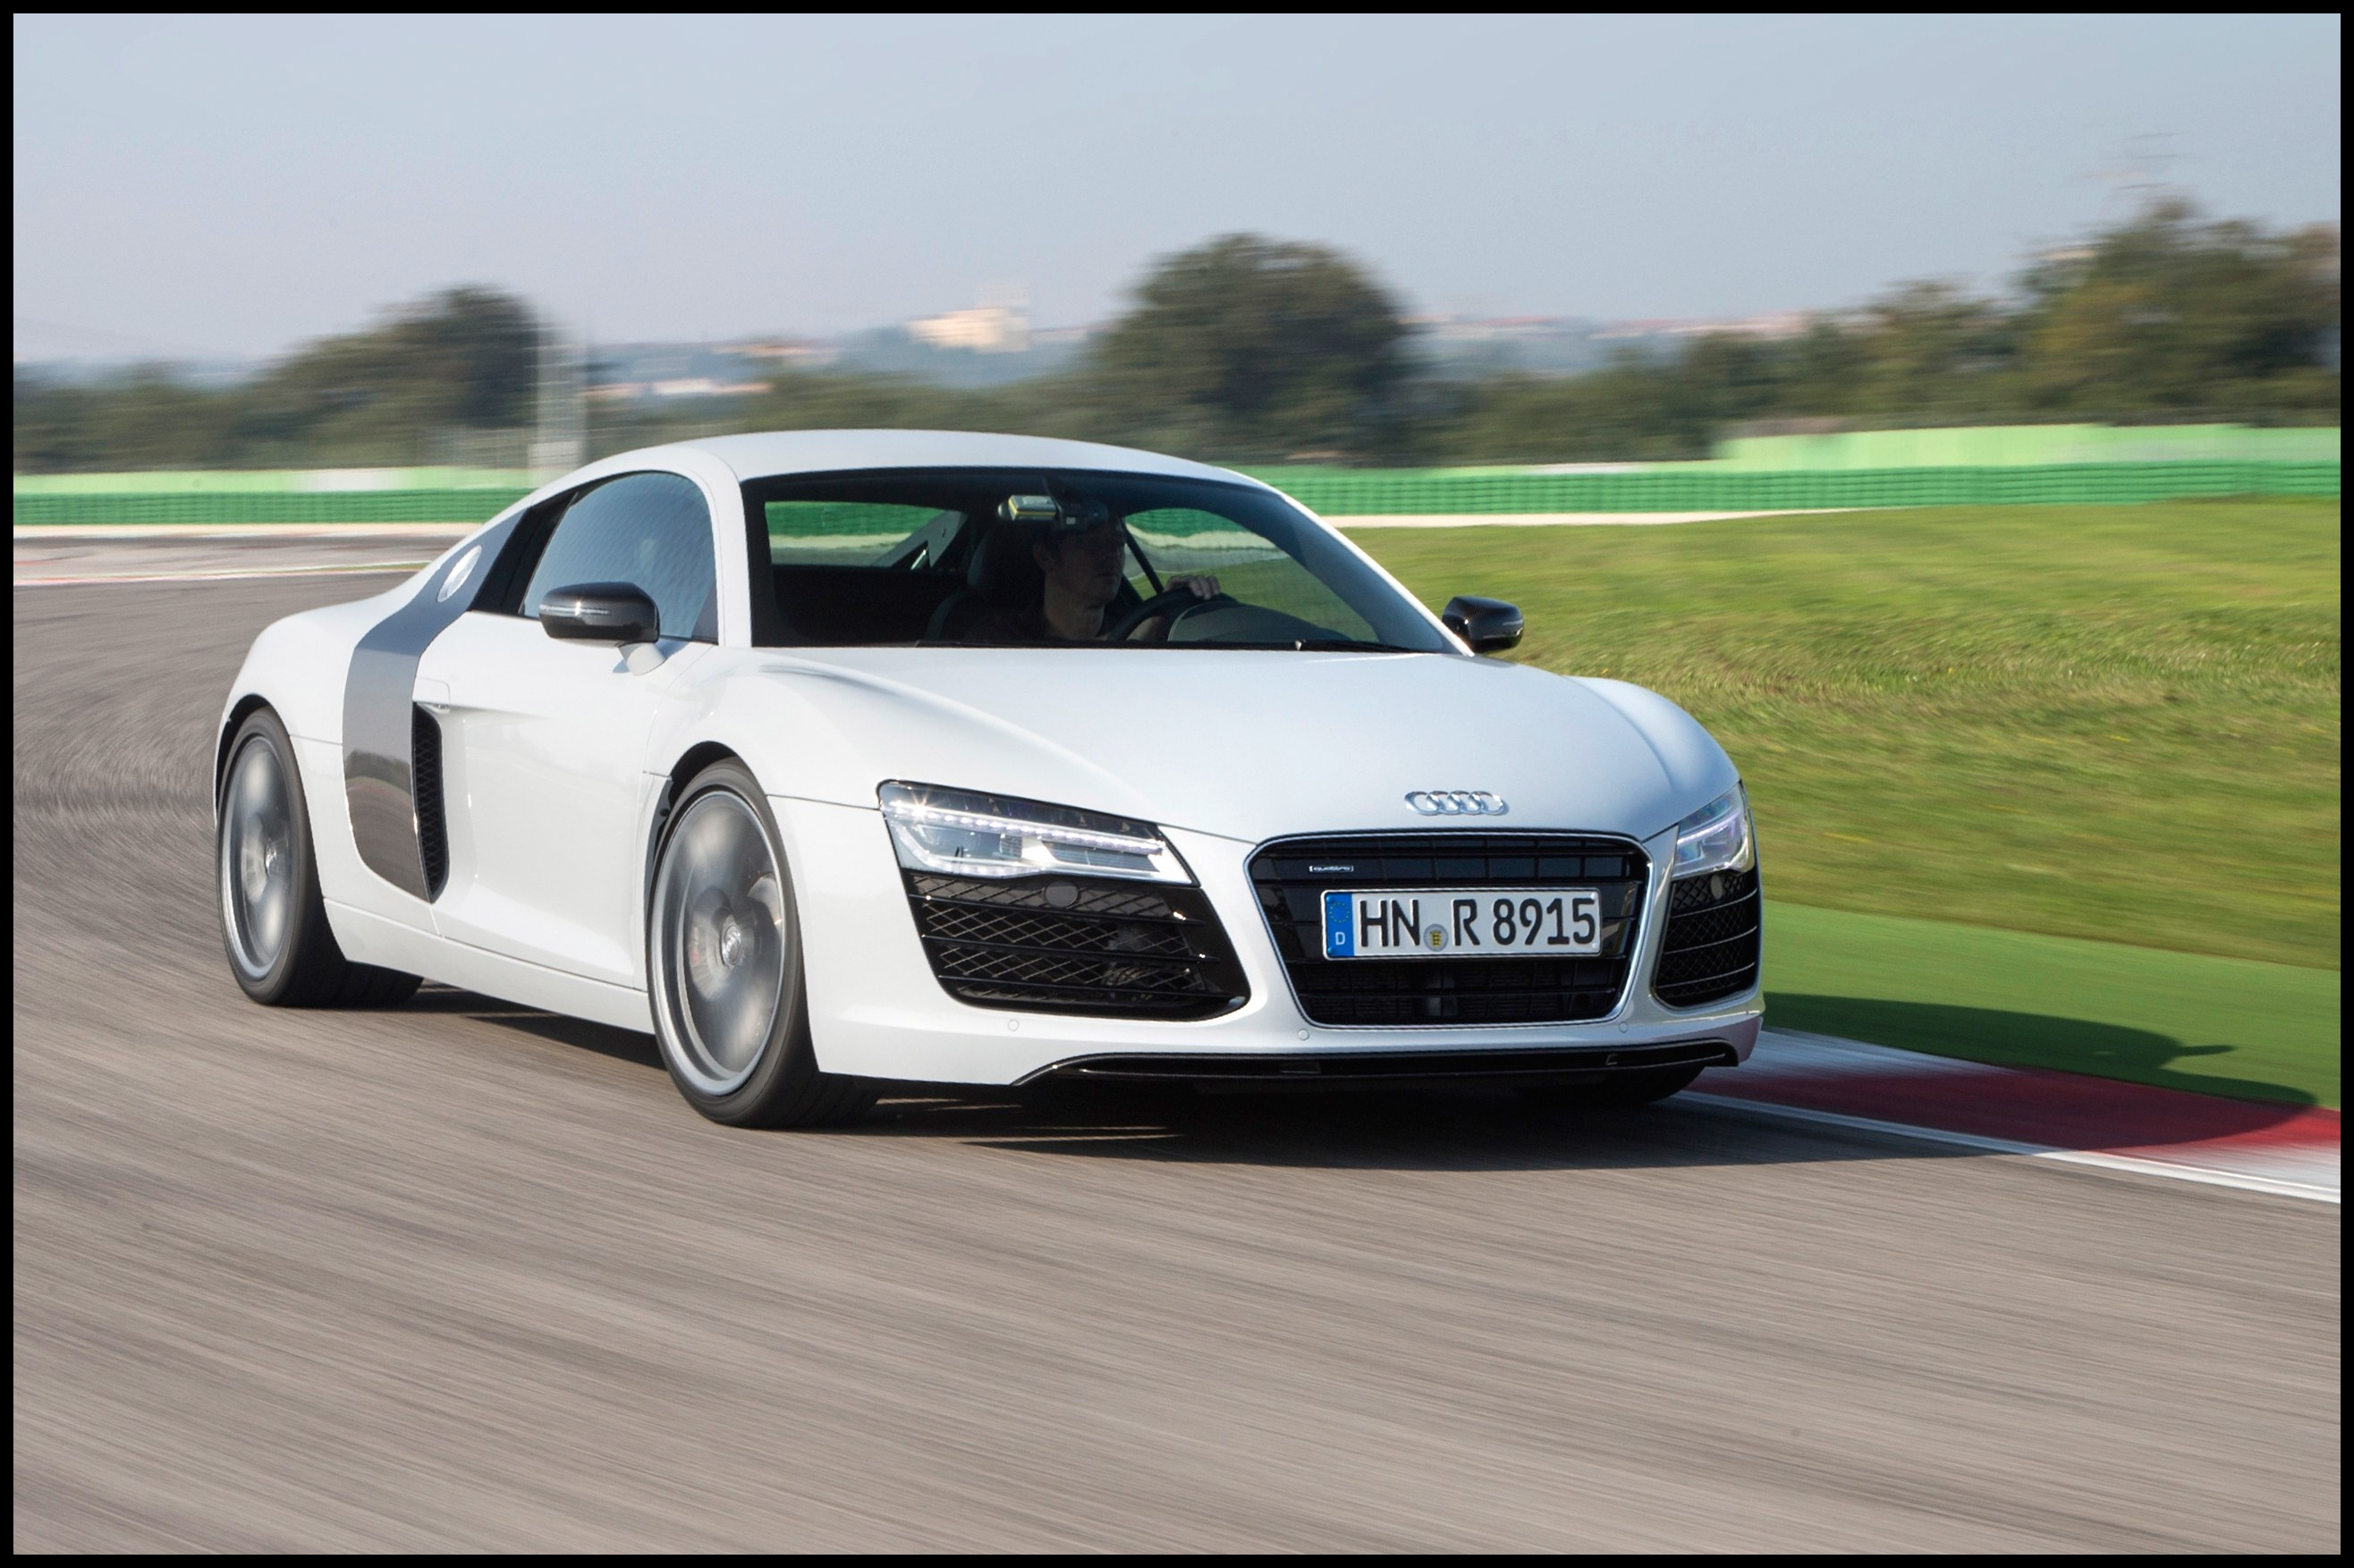 The 2014 R8 is one of the last in a great generation Audi